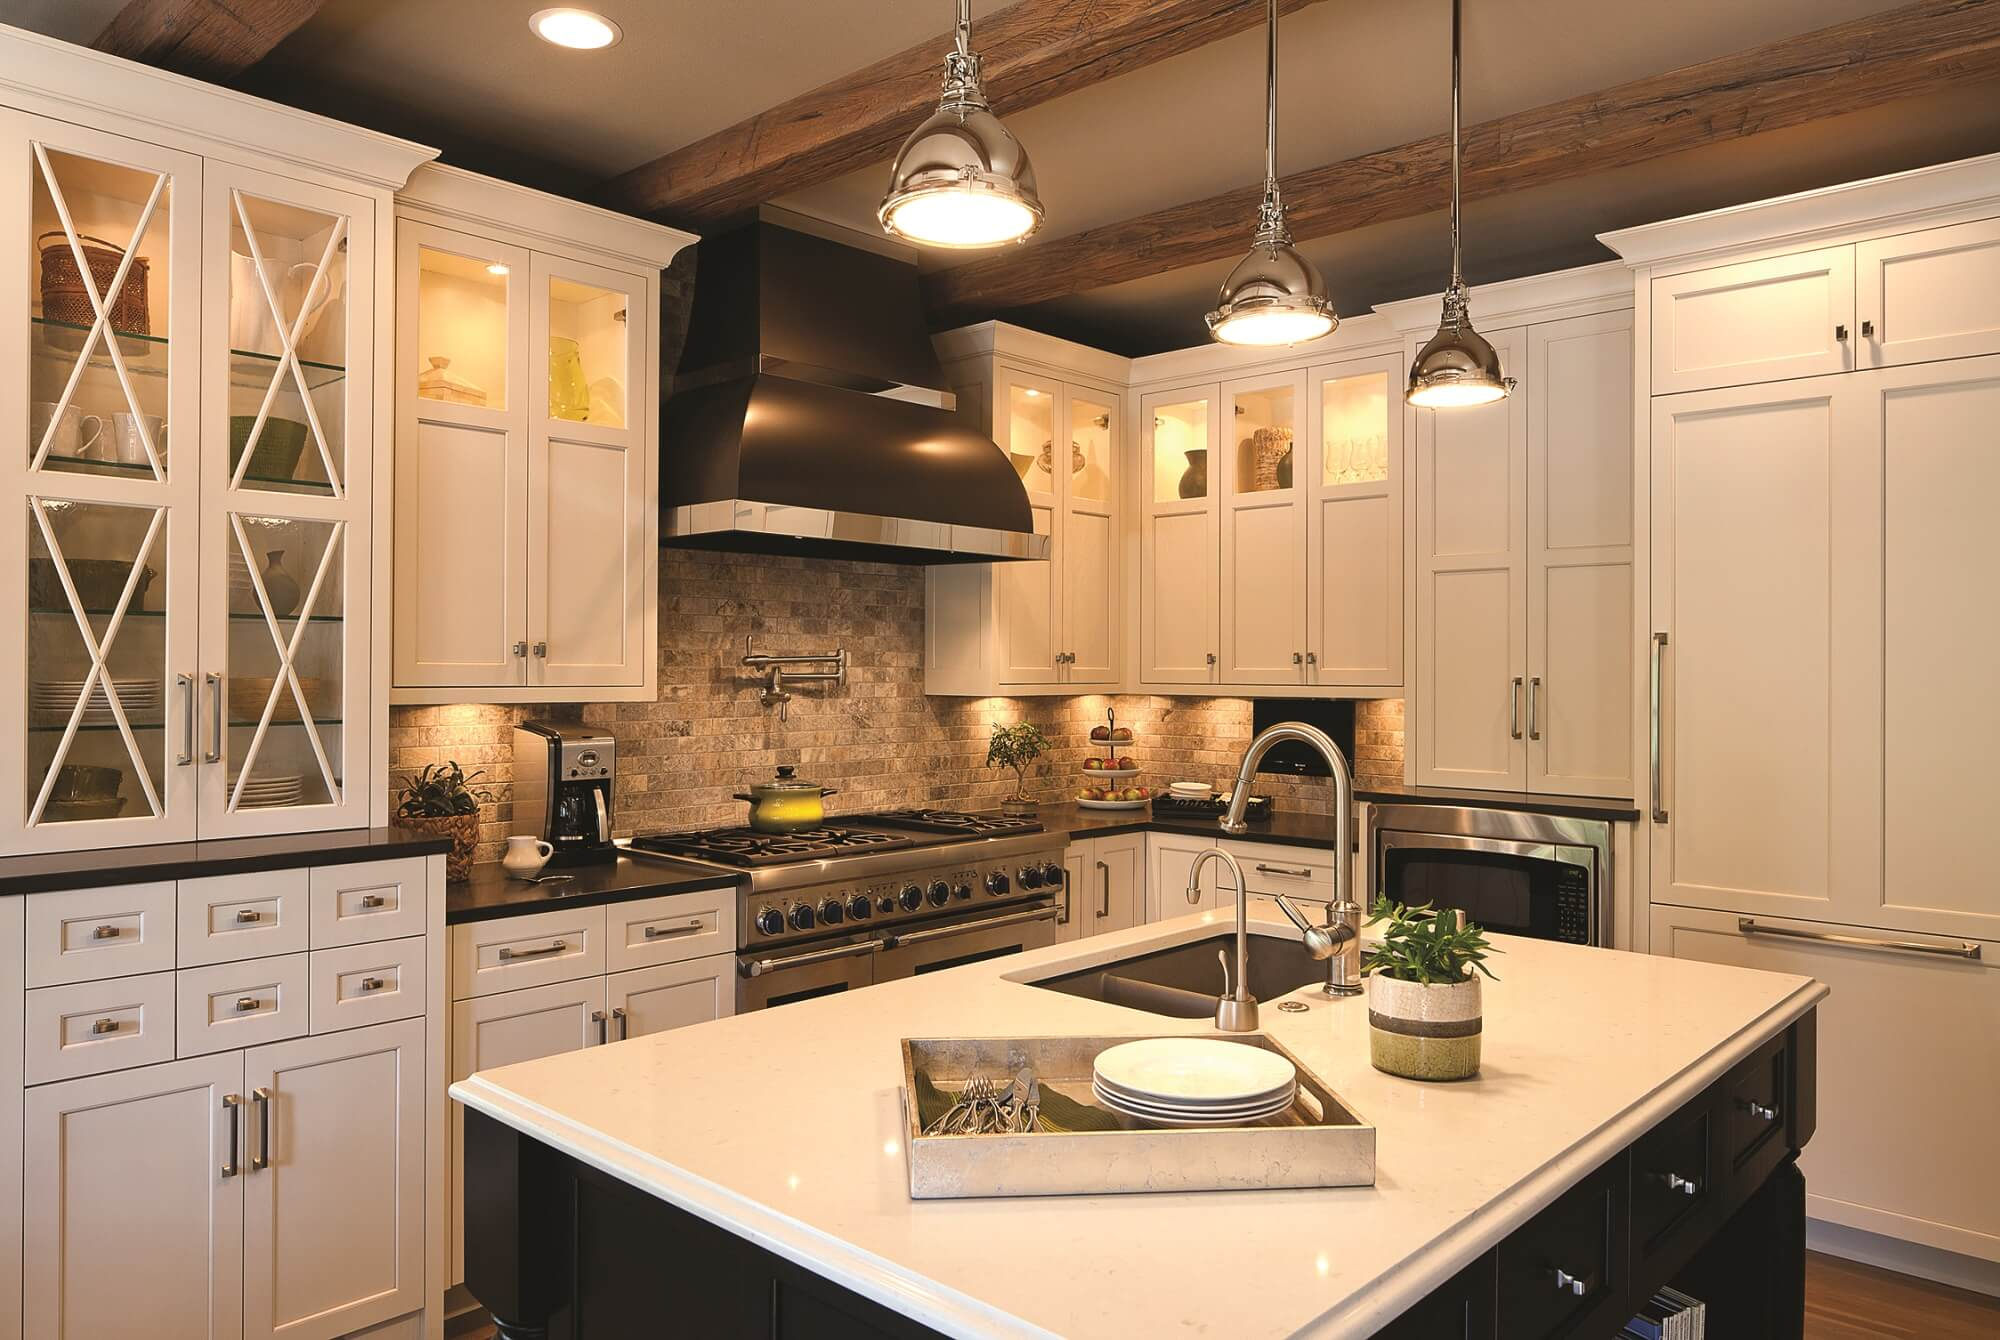 Reynolds design remodeling kitchens bathrooms more for Bath remodel lincoln ne